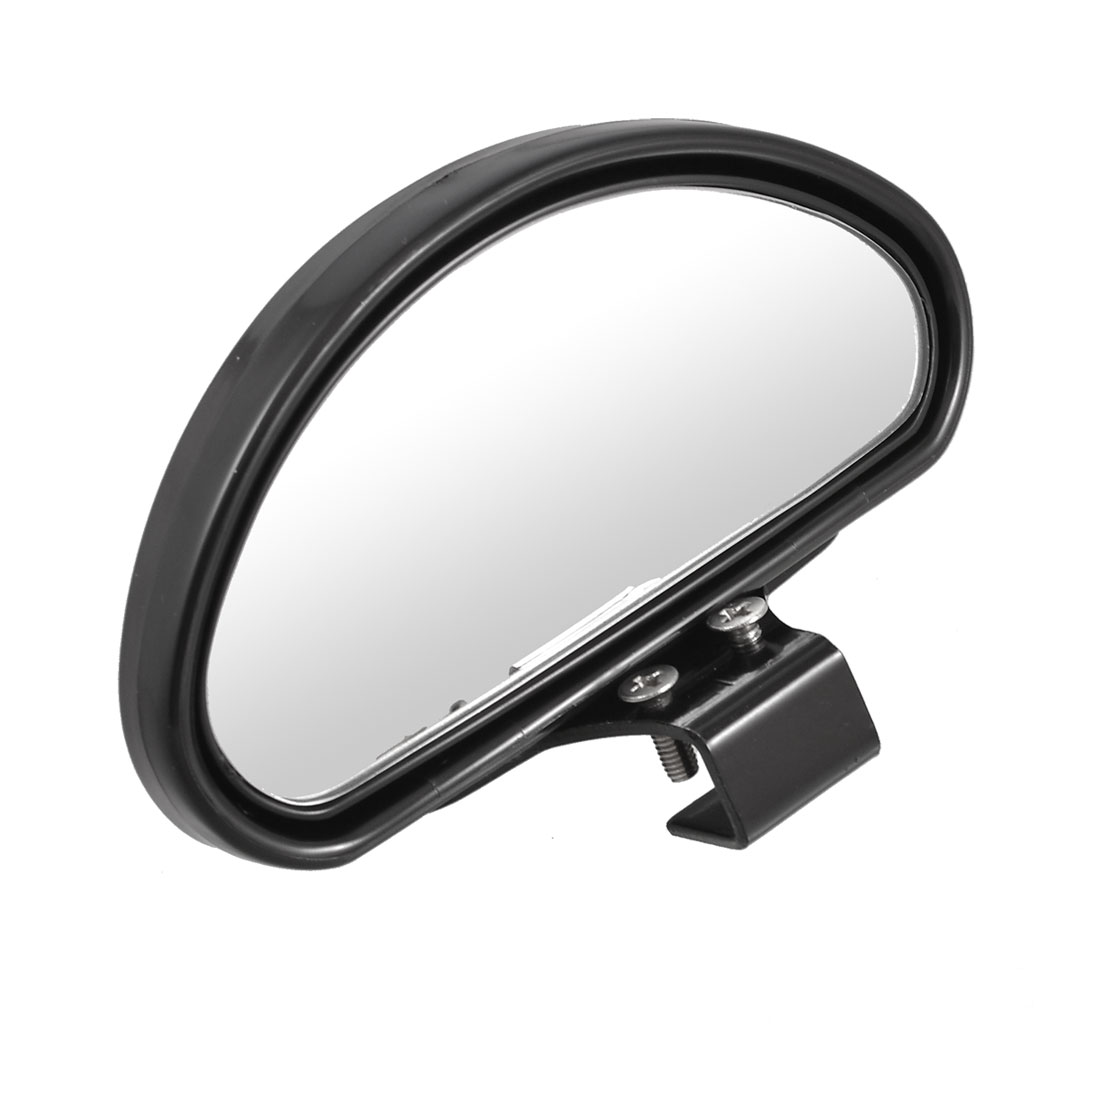 Universal Black Adjustable Vehicle Car Wide Angle Rear View Blind Spot Mirror